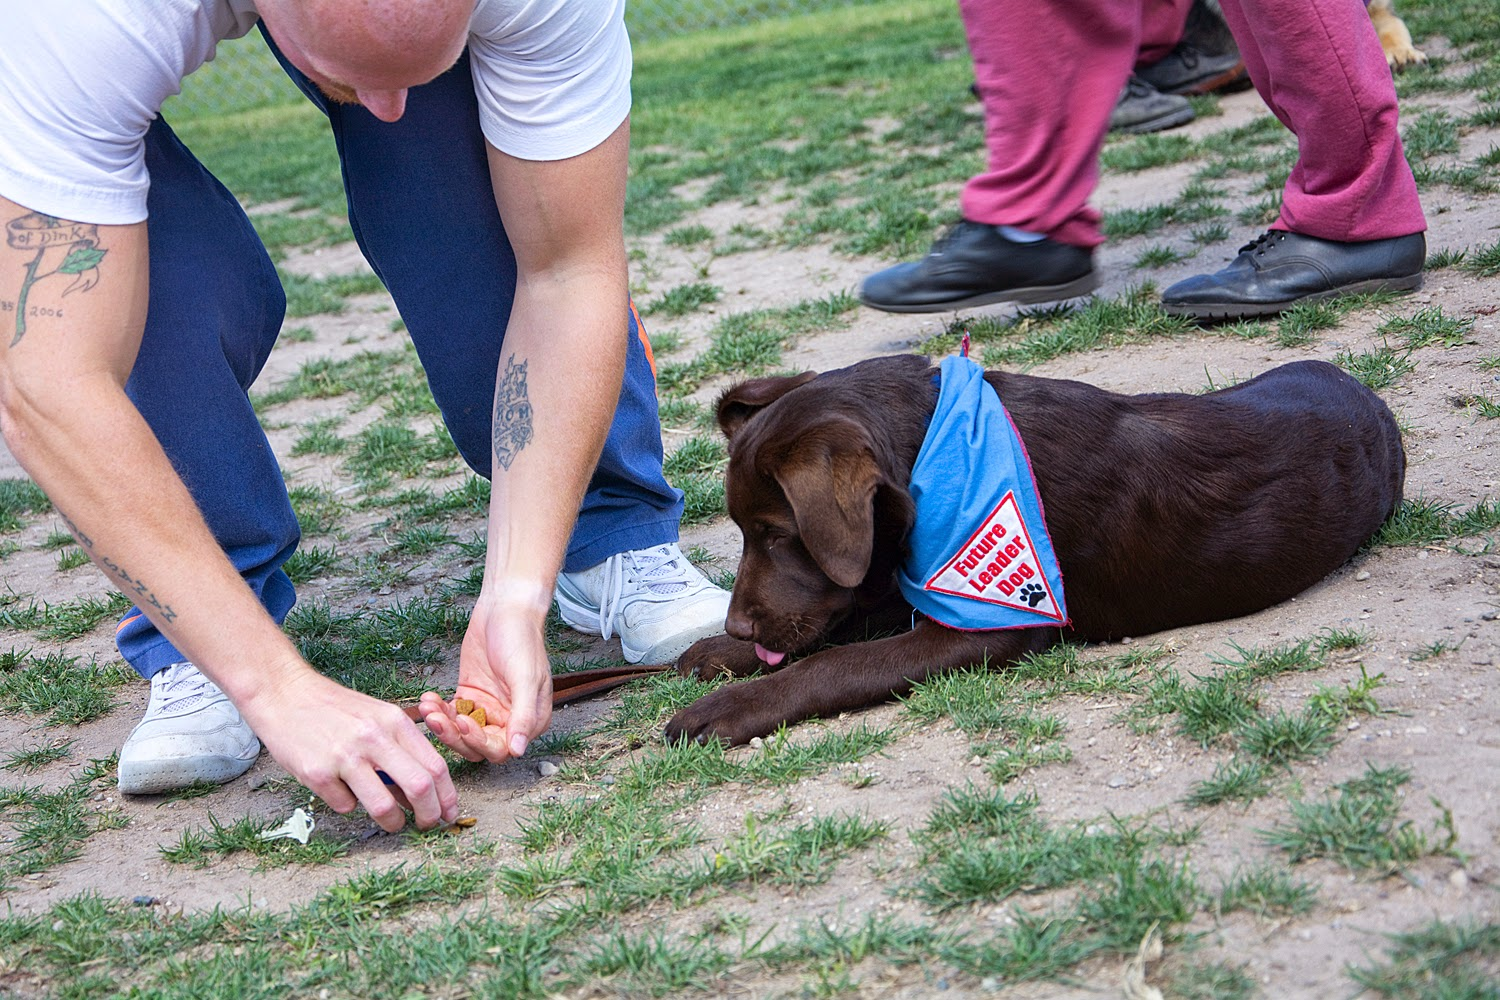 A man dressed in prison blue pants and a white t-shirt is bending over placing bits of kibble on the grass in front of a young chocolate lab. The lab is lying down facing the left and wearing the blue Future Leader Dog bandana. The puppy is looking intently at the kibble with his tongue just coming out. There are legs of another man in the background, wearing maroon sweat pants.